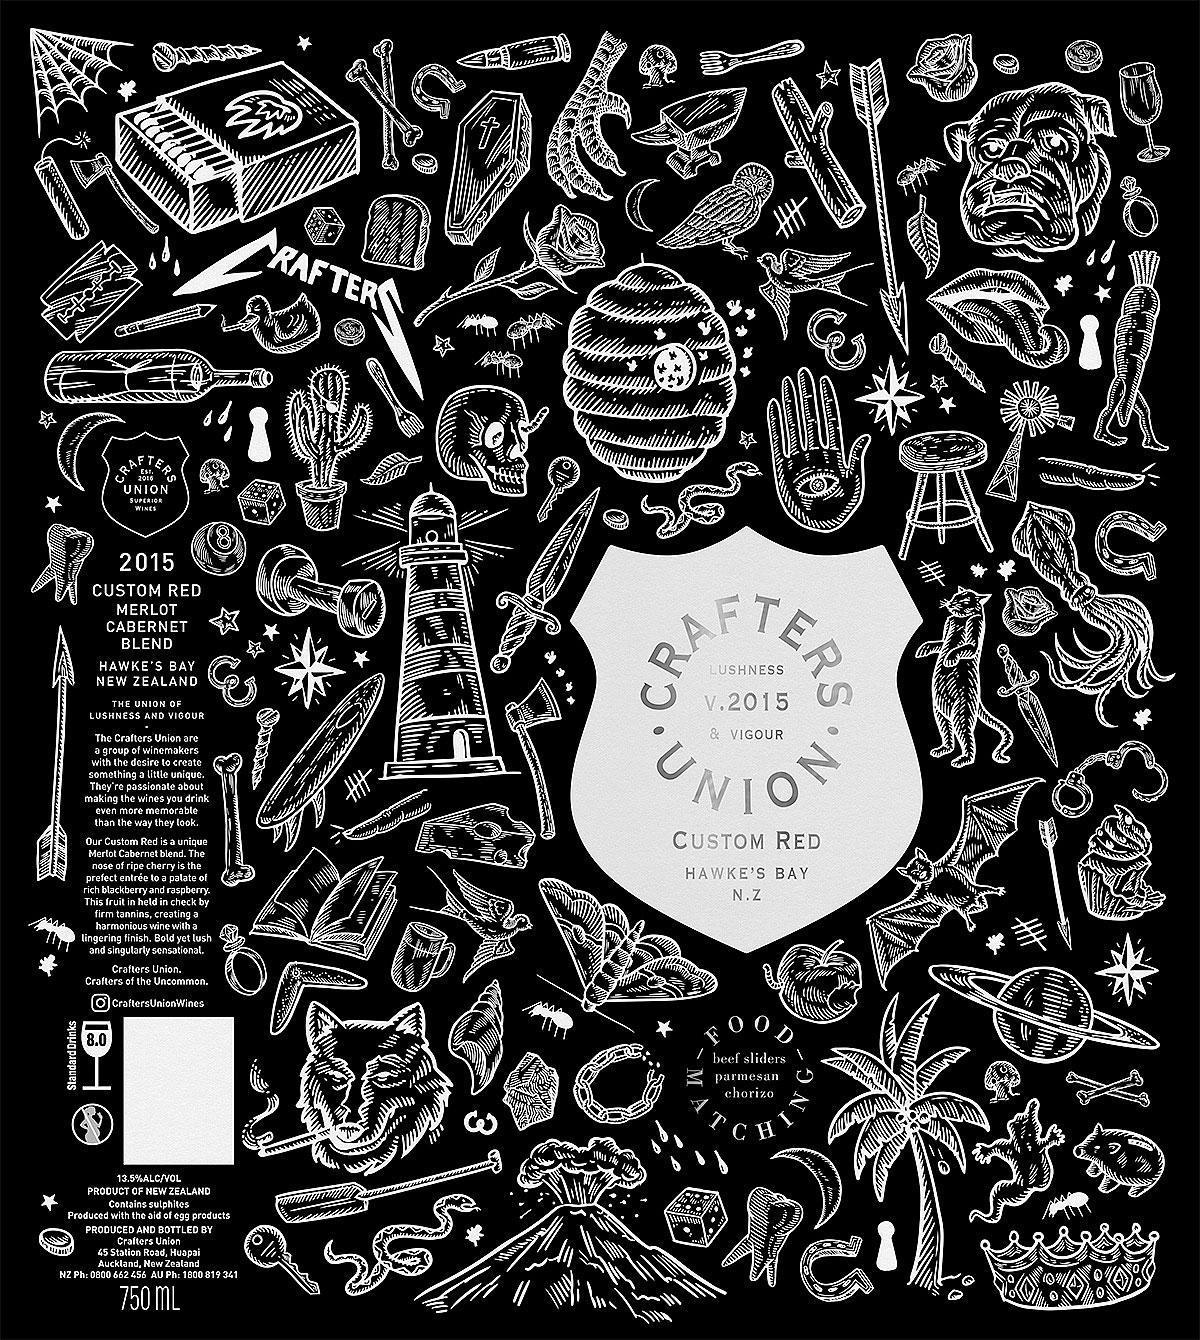 Constellation_Brands-Crafters_Union_03